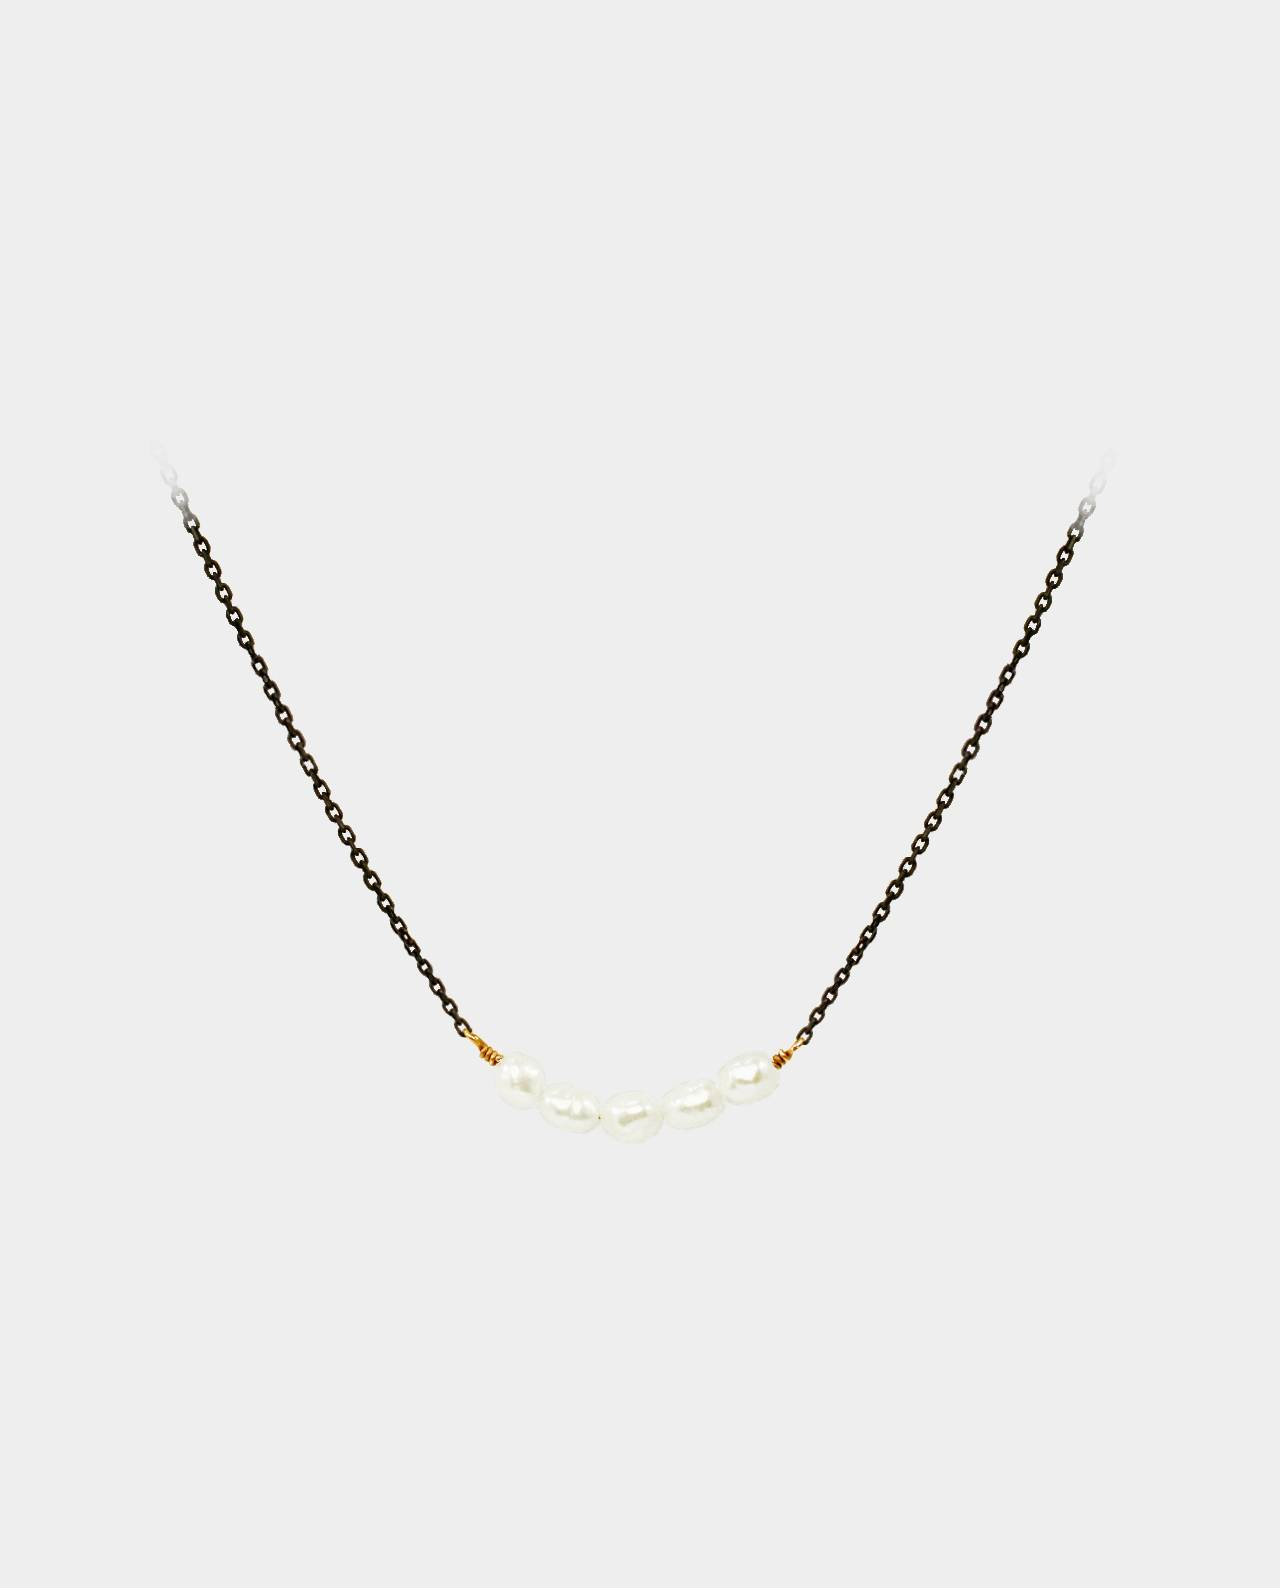 Necklace with freshwater pearls that shine on a sparkly chain in oxidized sterling silver